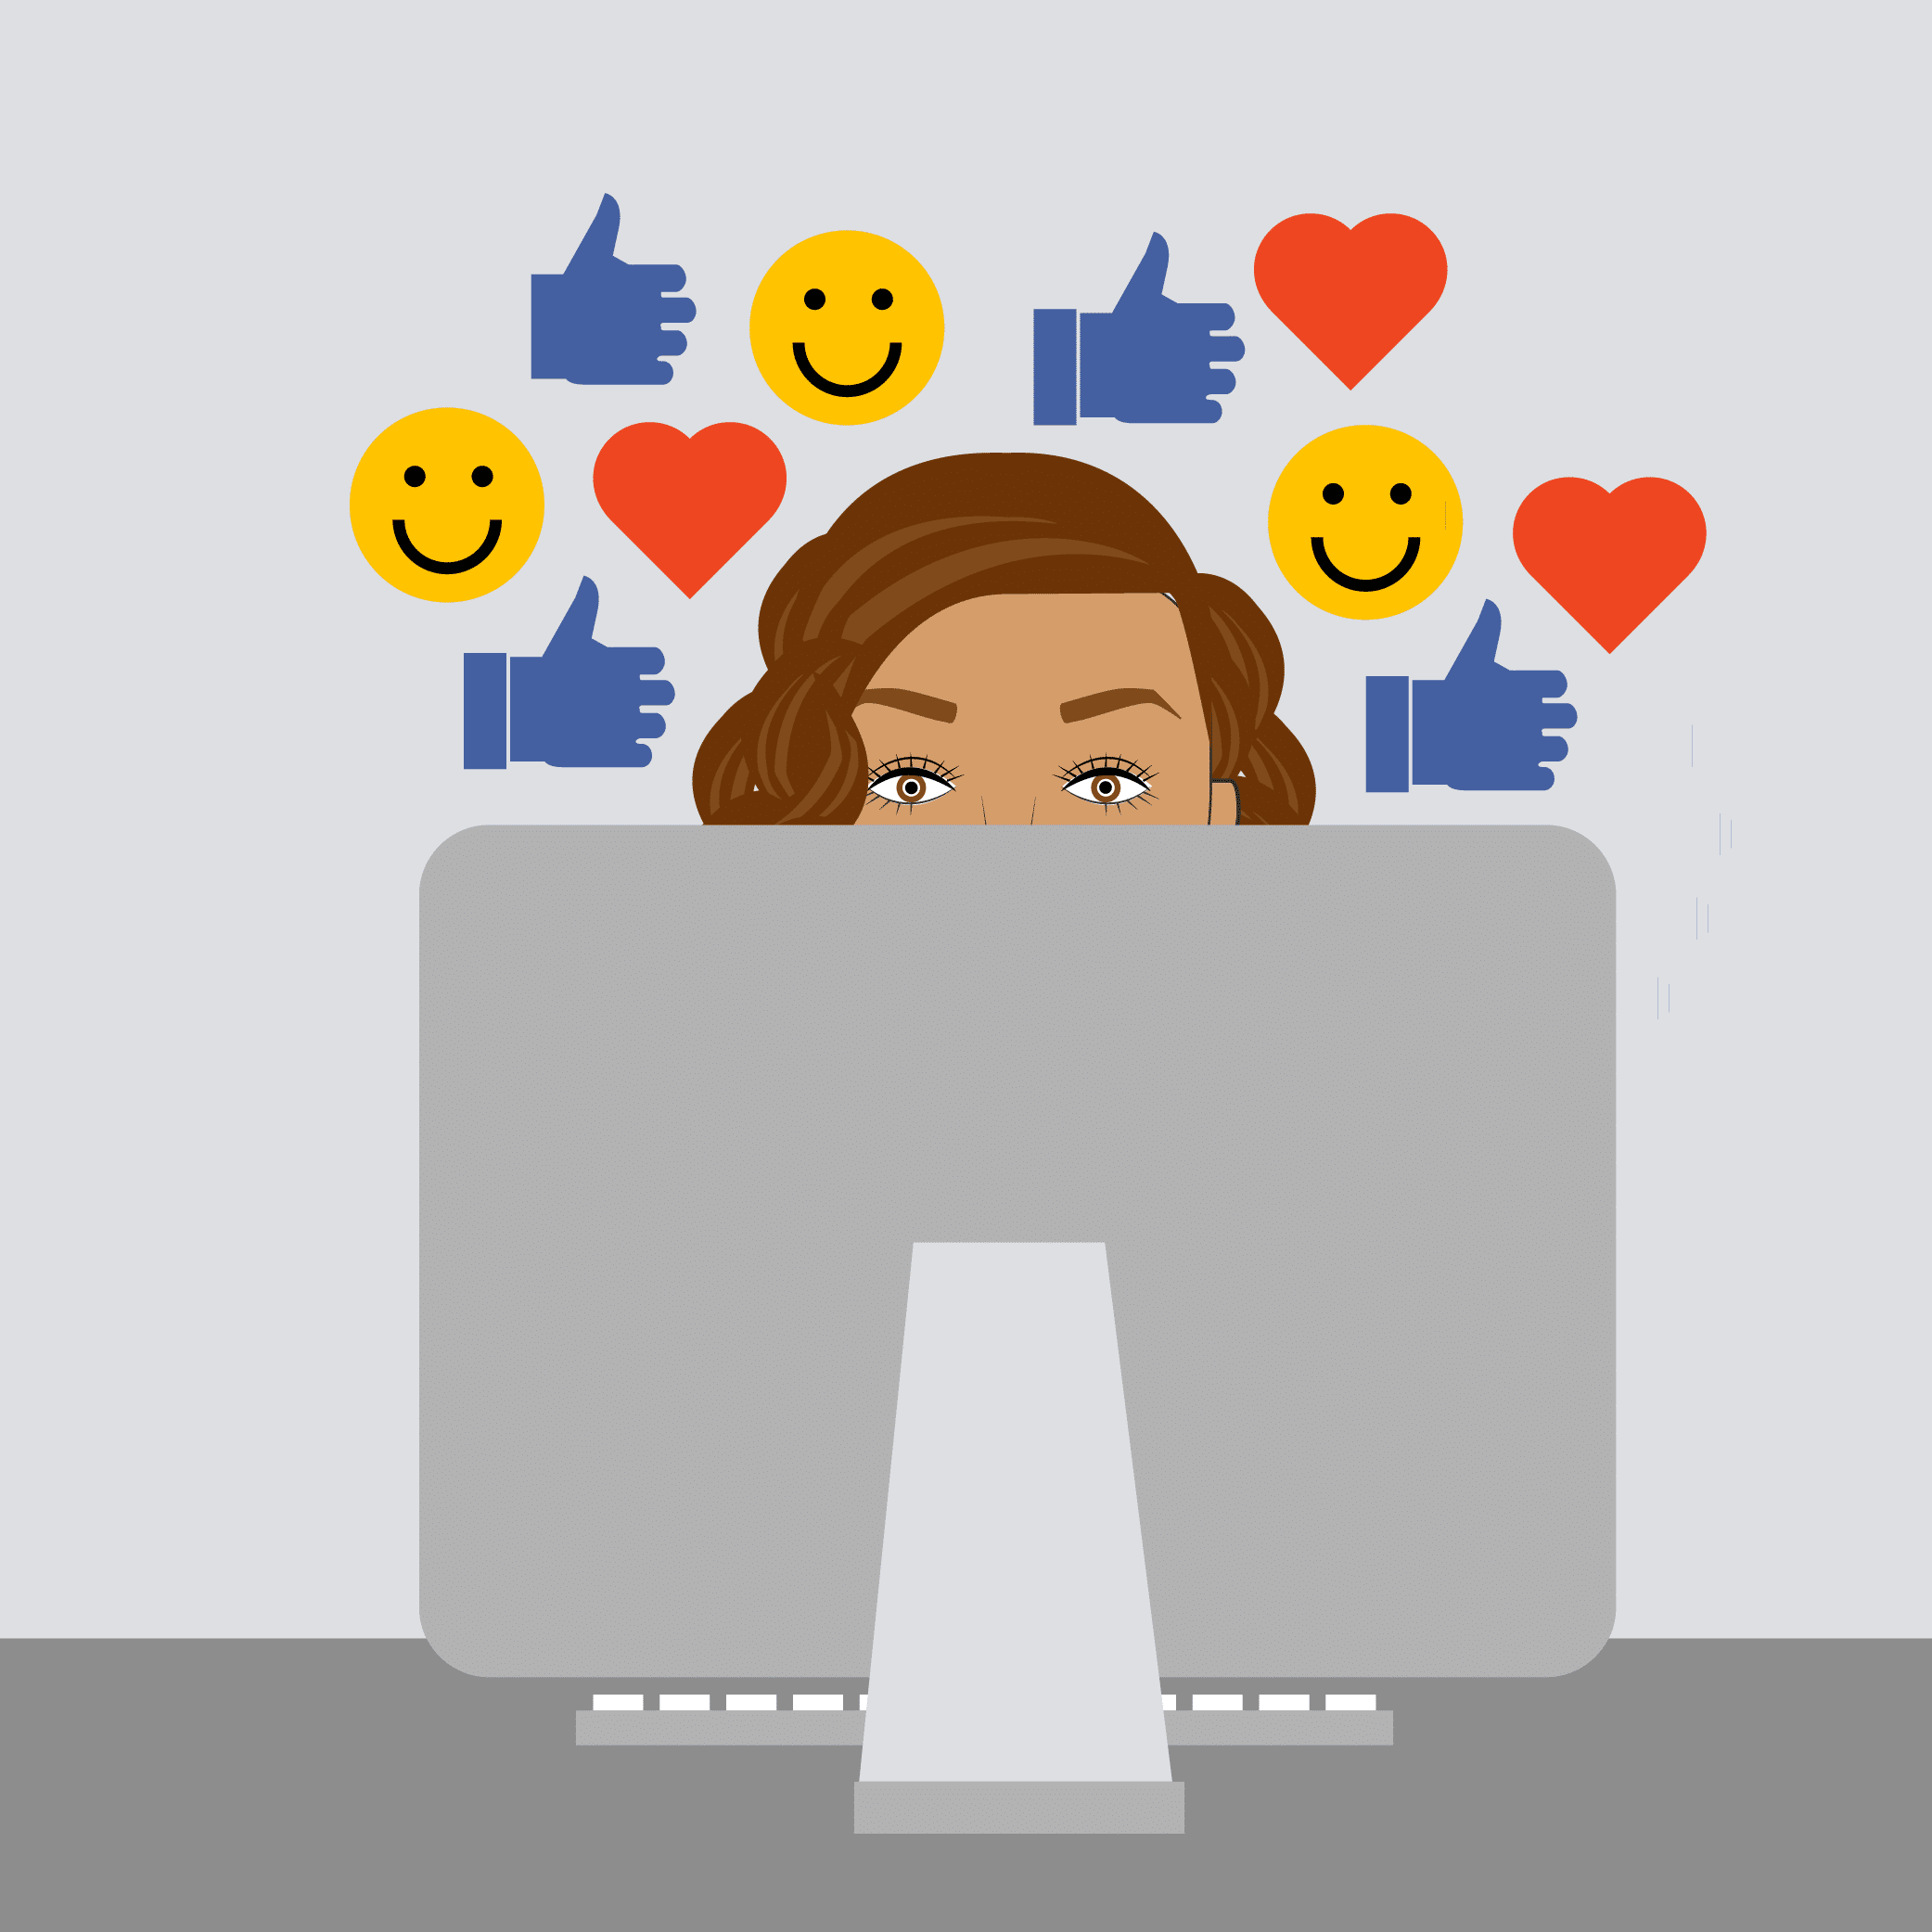 Illustration of woman at a computer surrounded by happy emojis.